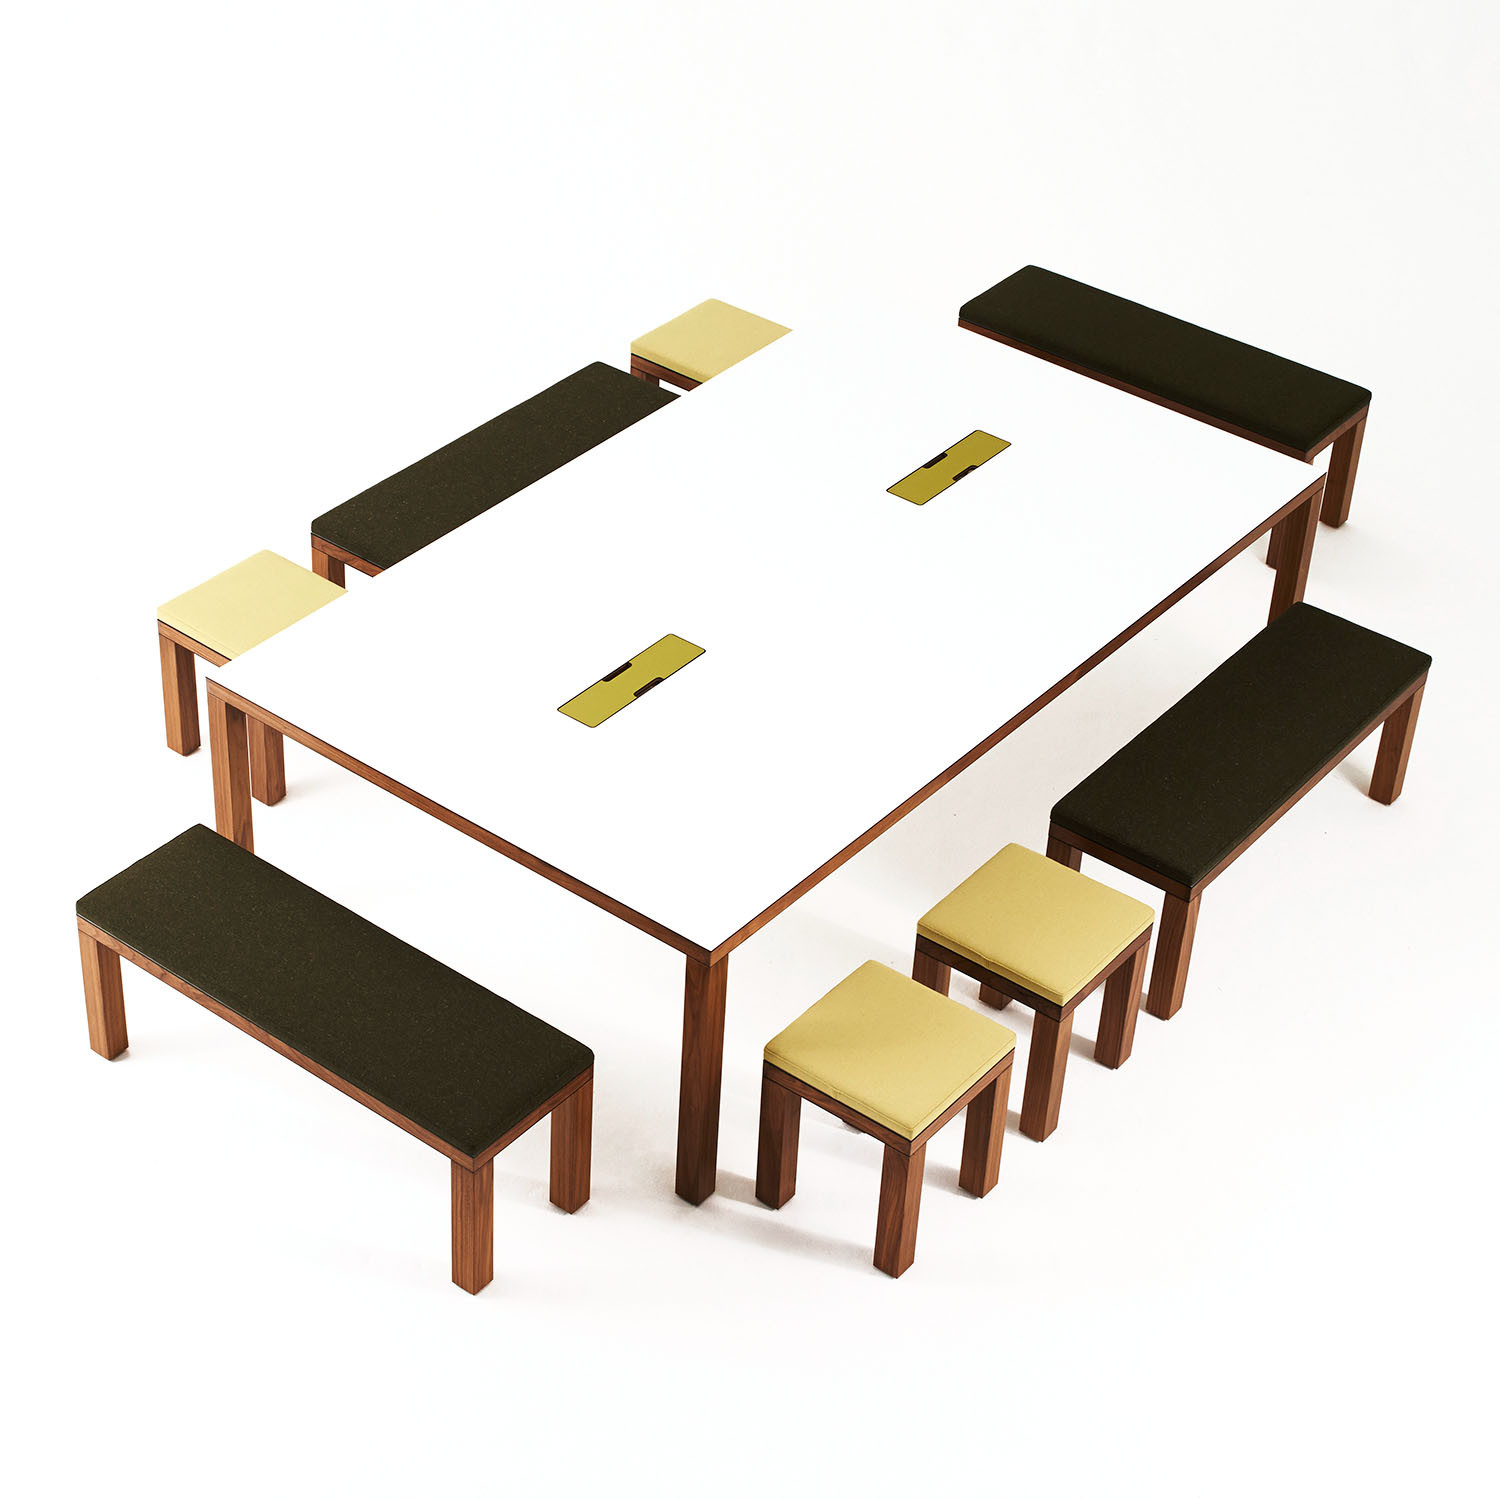 Bosa Meeting Table, Stools and Benches